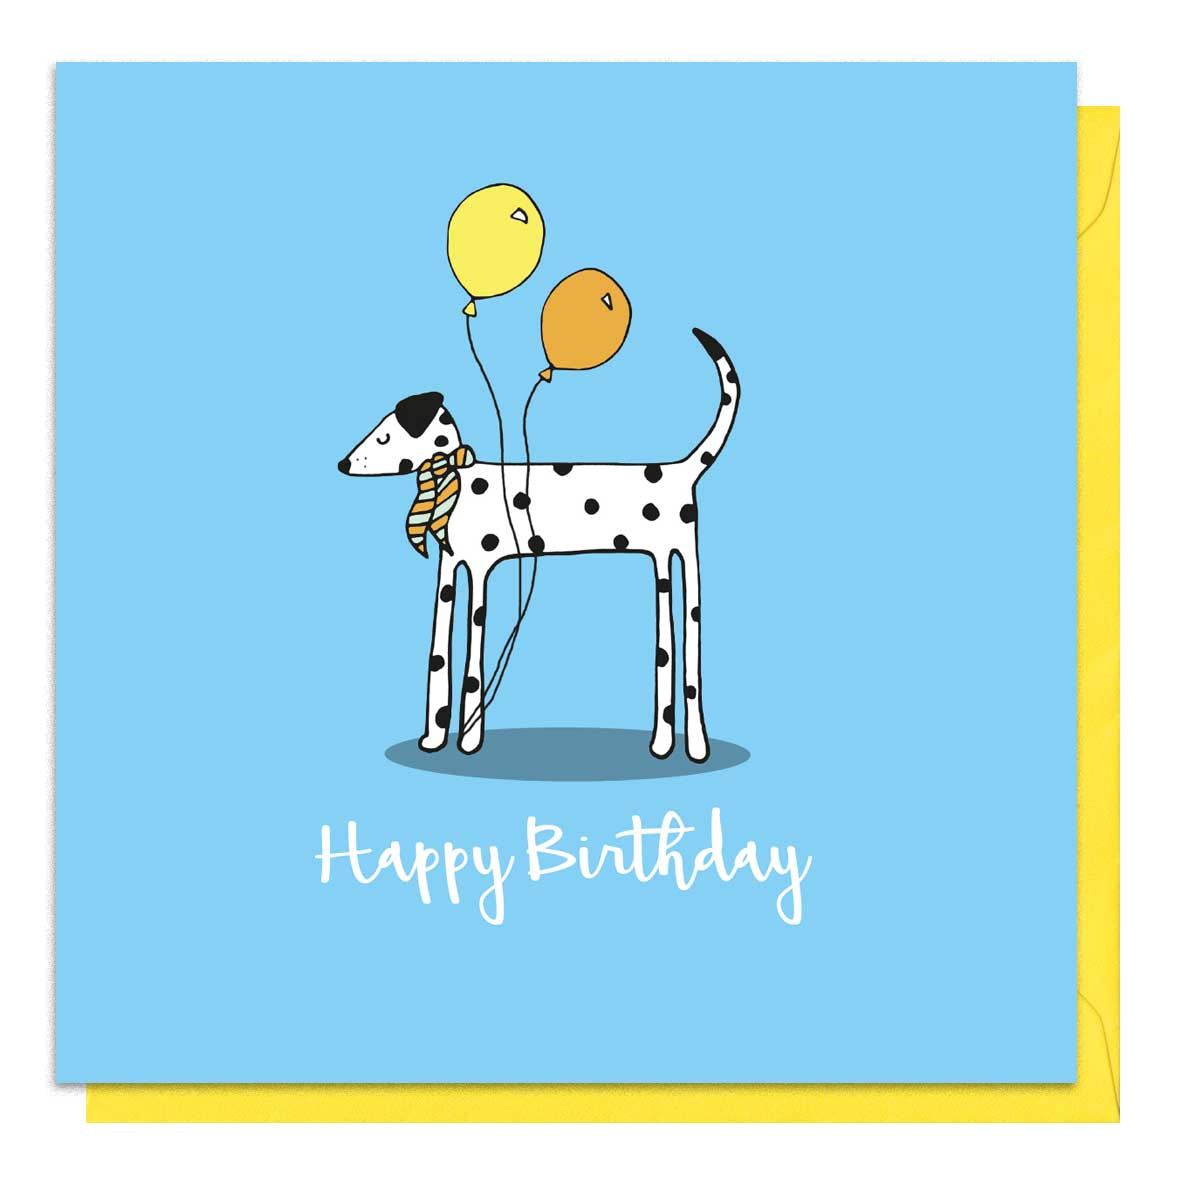 Blue birthday card with an illustration of a dalmatian